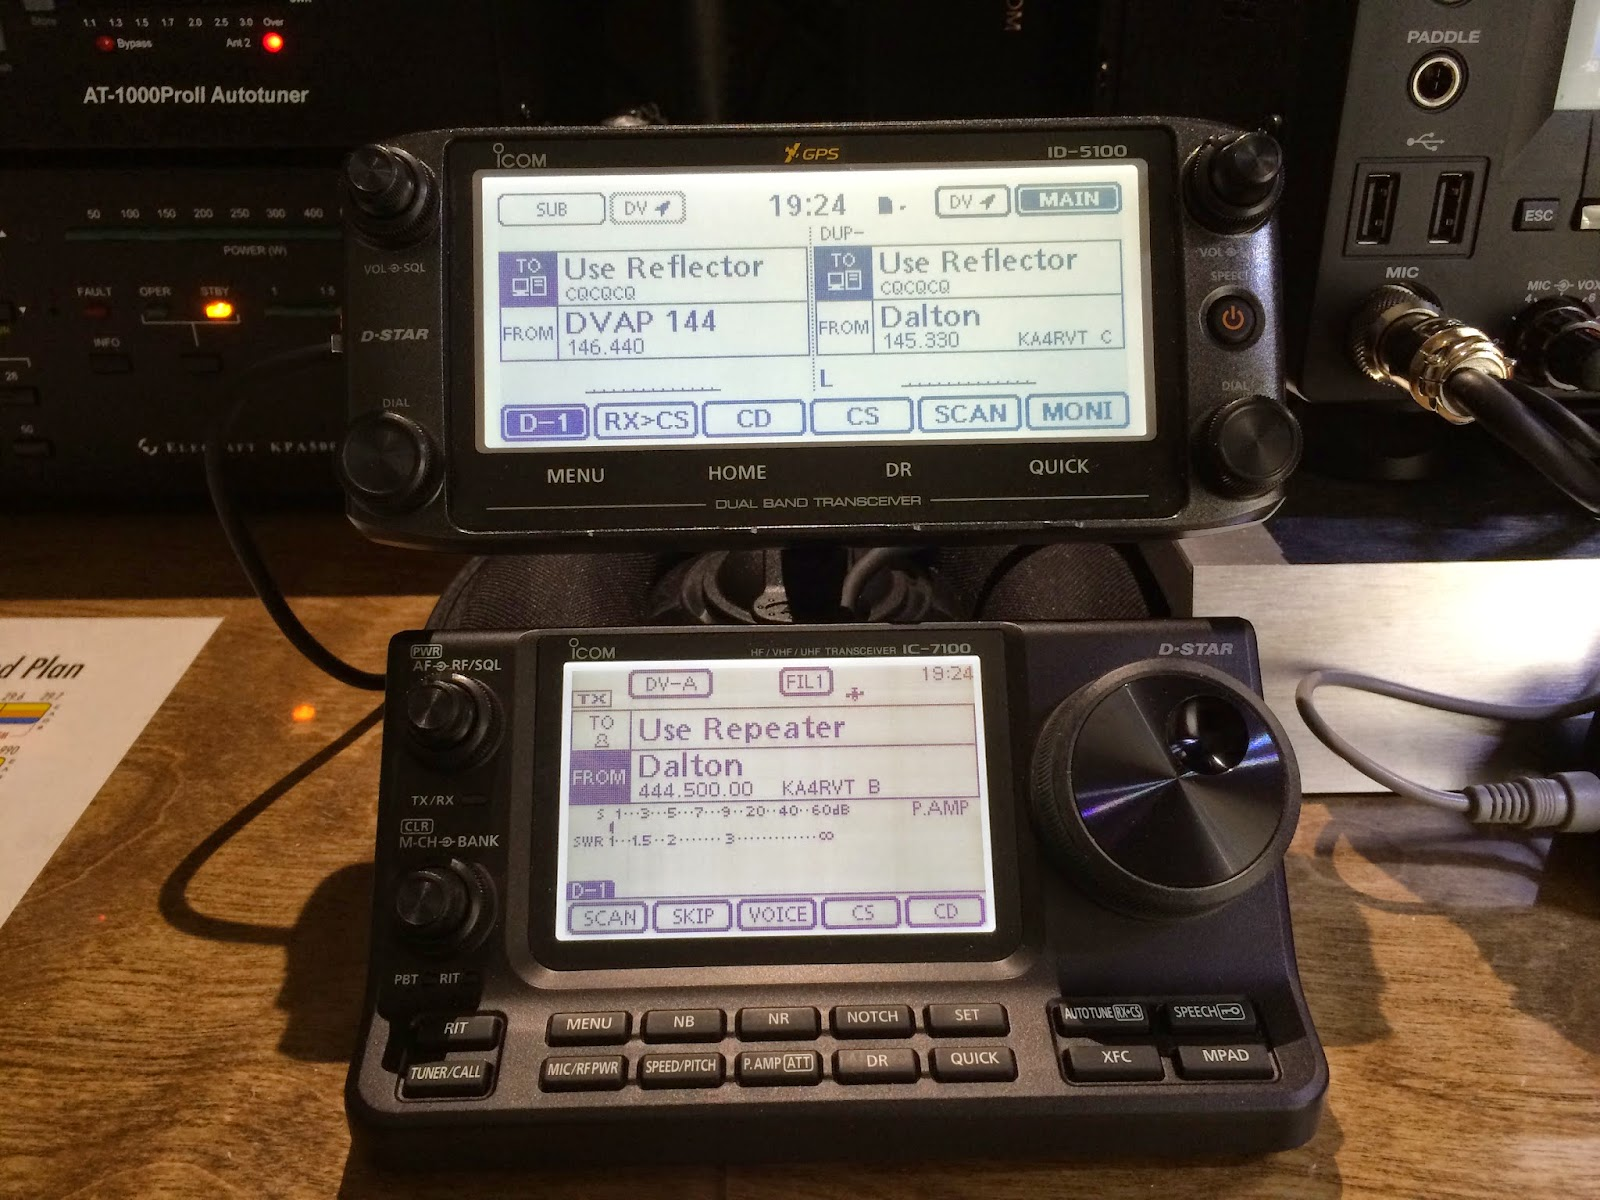 icom ic-7000 driver replacement youtube - FREE ONLINE